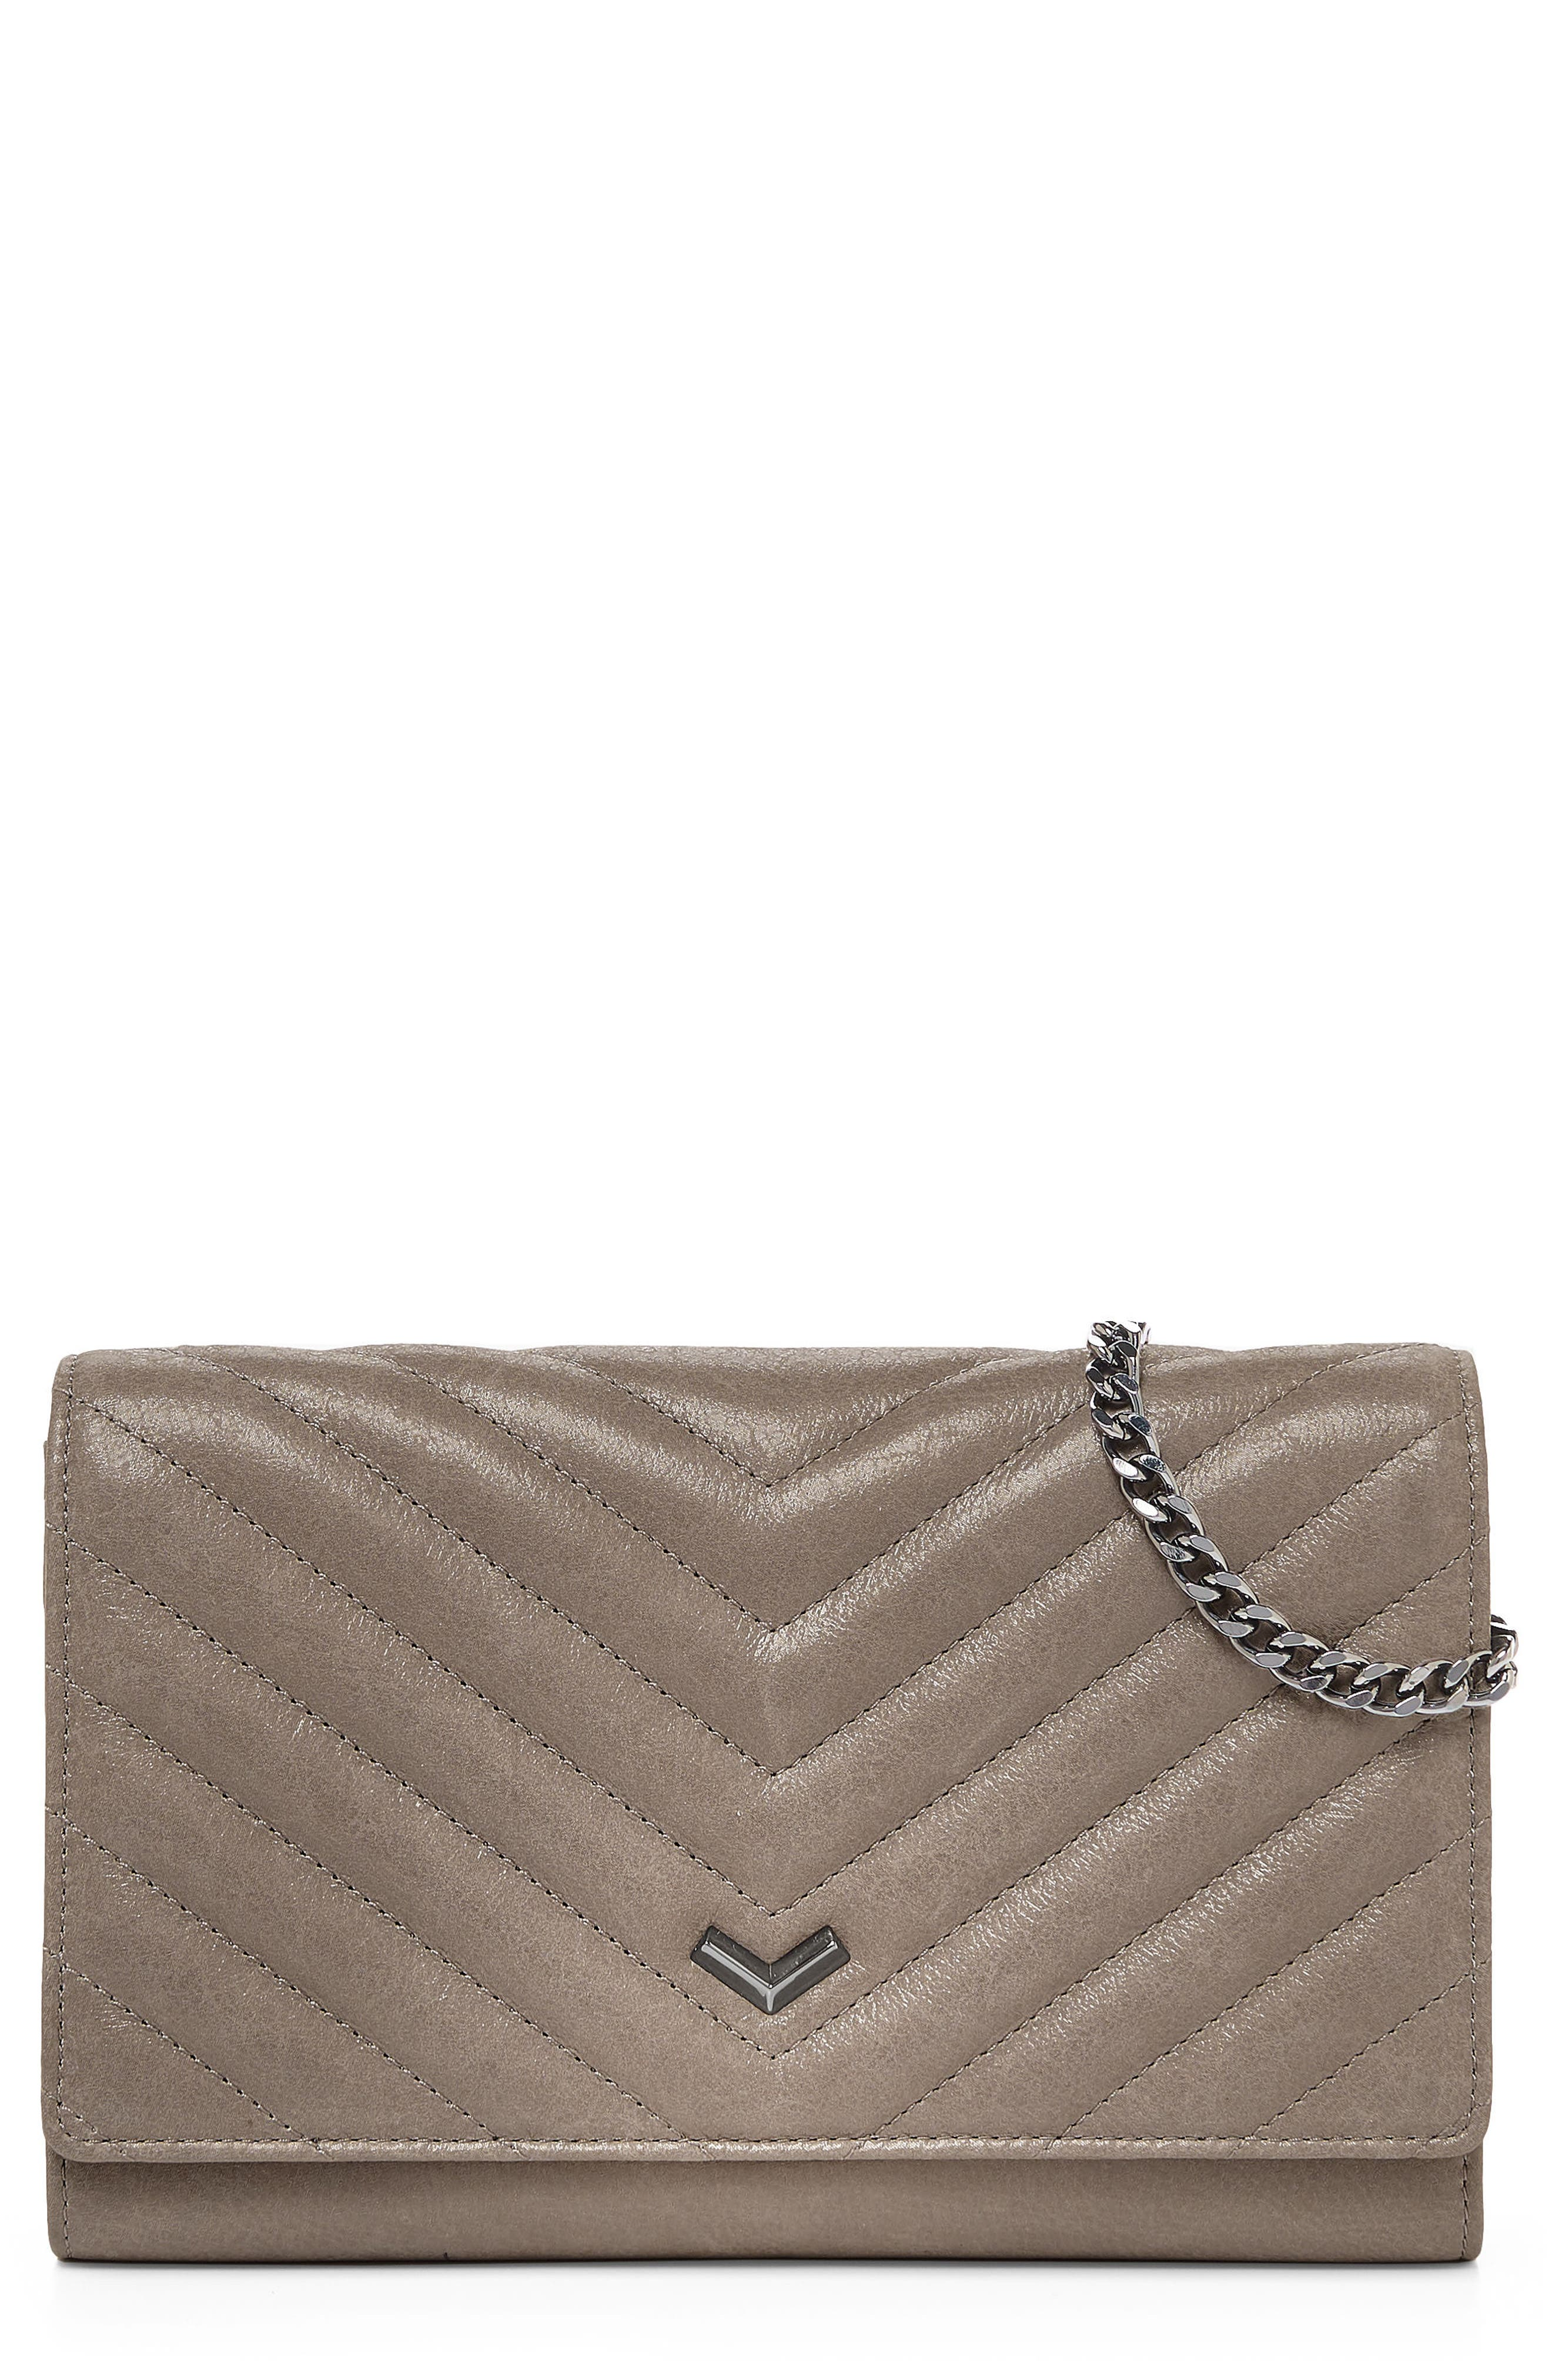 Soho Calfskin Leather Wallet on a Chain,                             Main thumbnail 1, color,                             Truffle